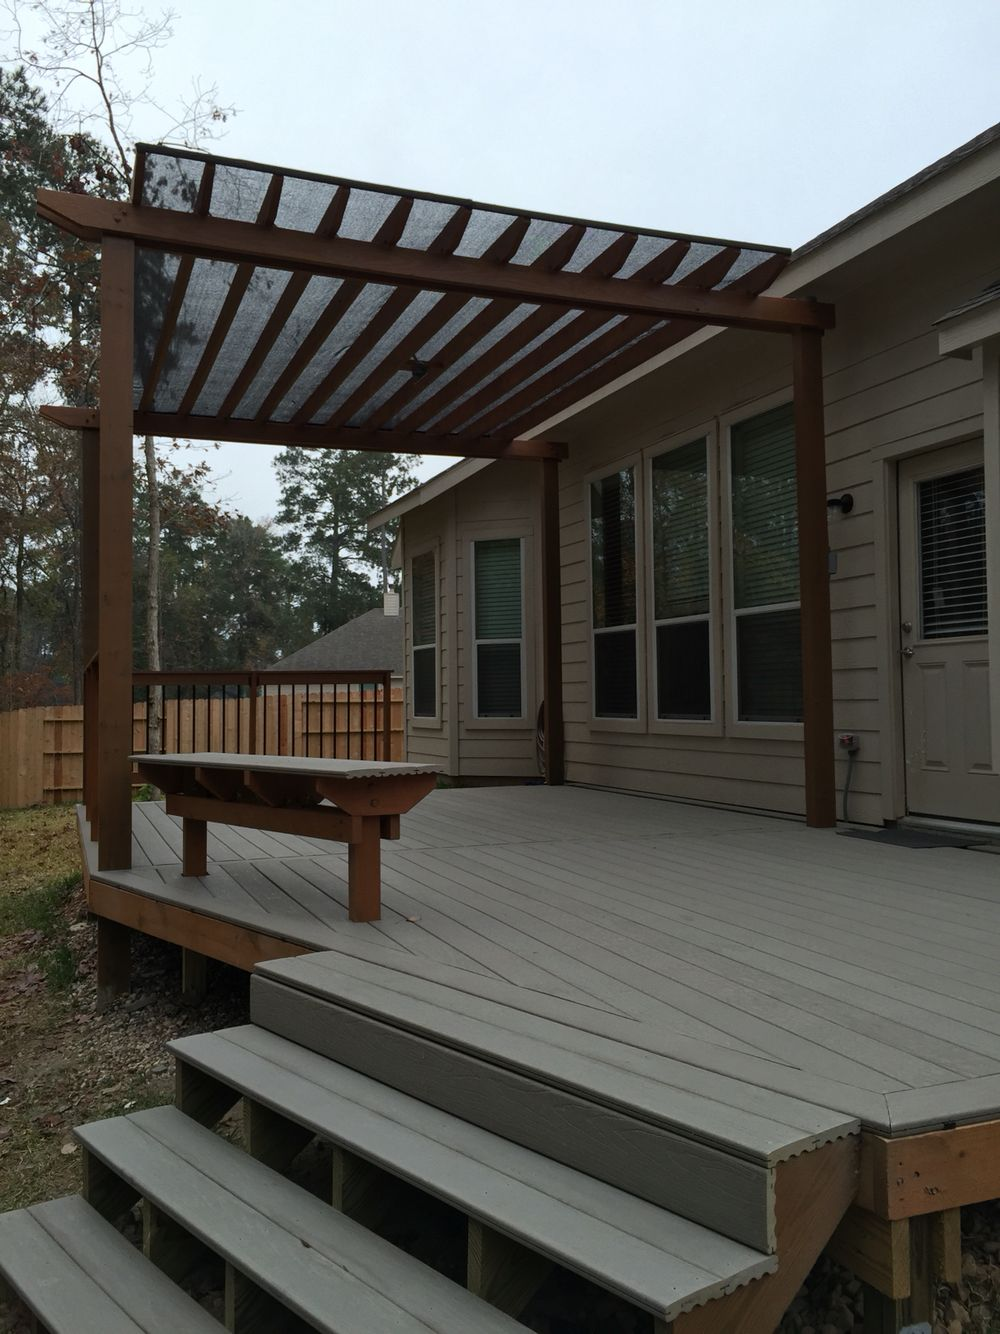 Pergola deck topped with composite decking. No staining or ...